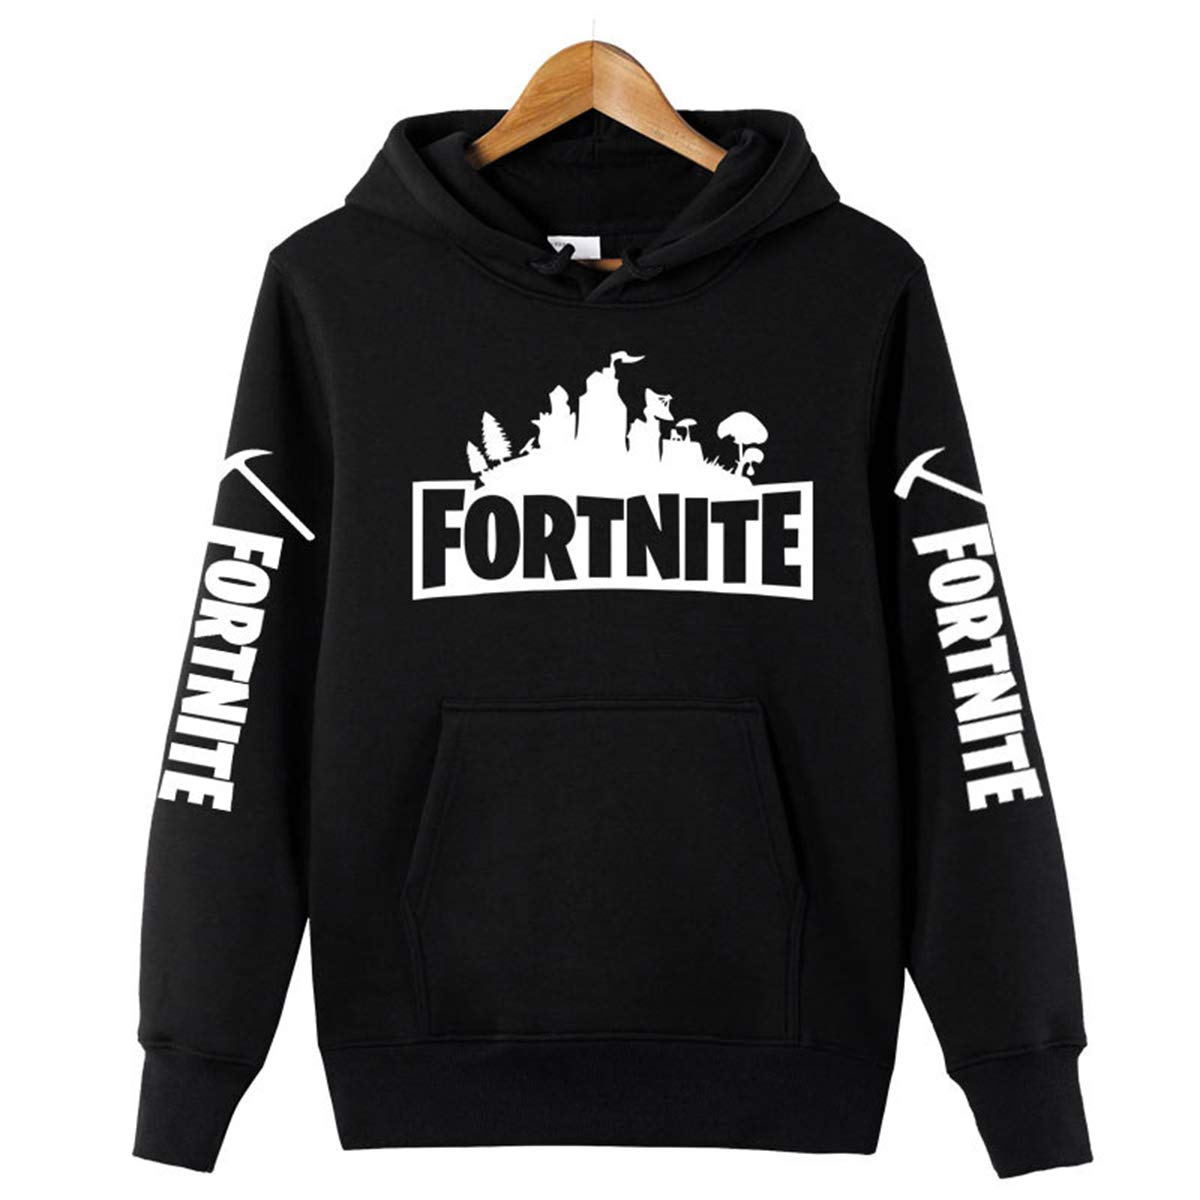 Comtervi Fortnite 3D Printing Unisex Hoodie Novelty Game Sweatshirt Pullover for Christmas